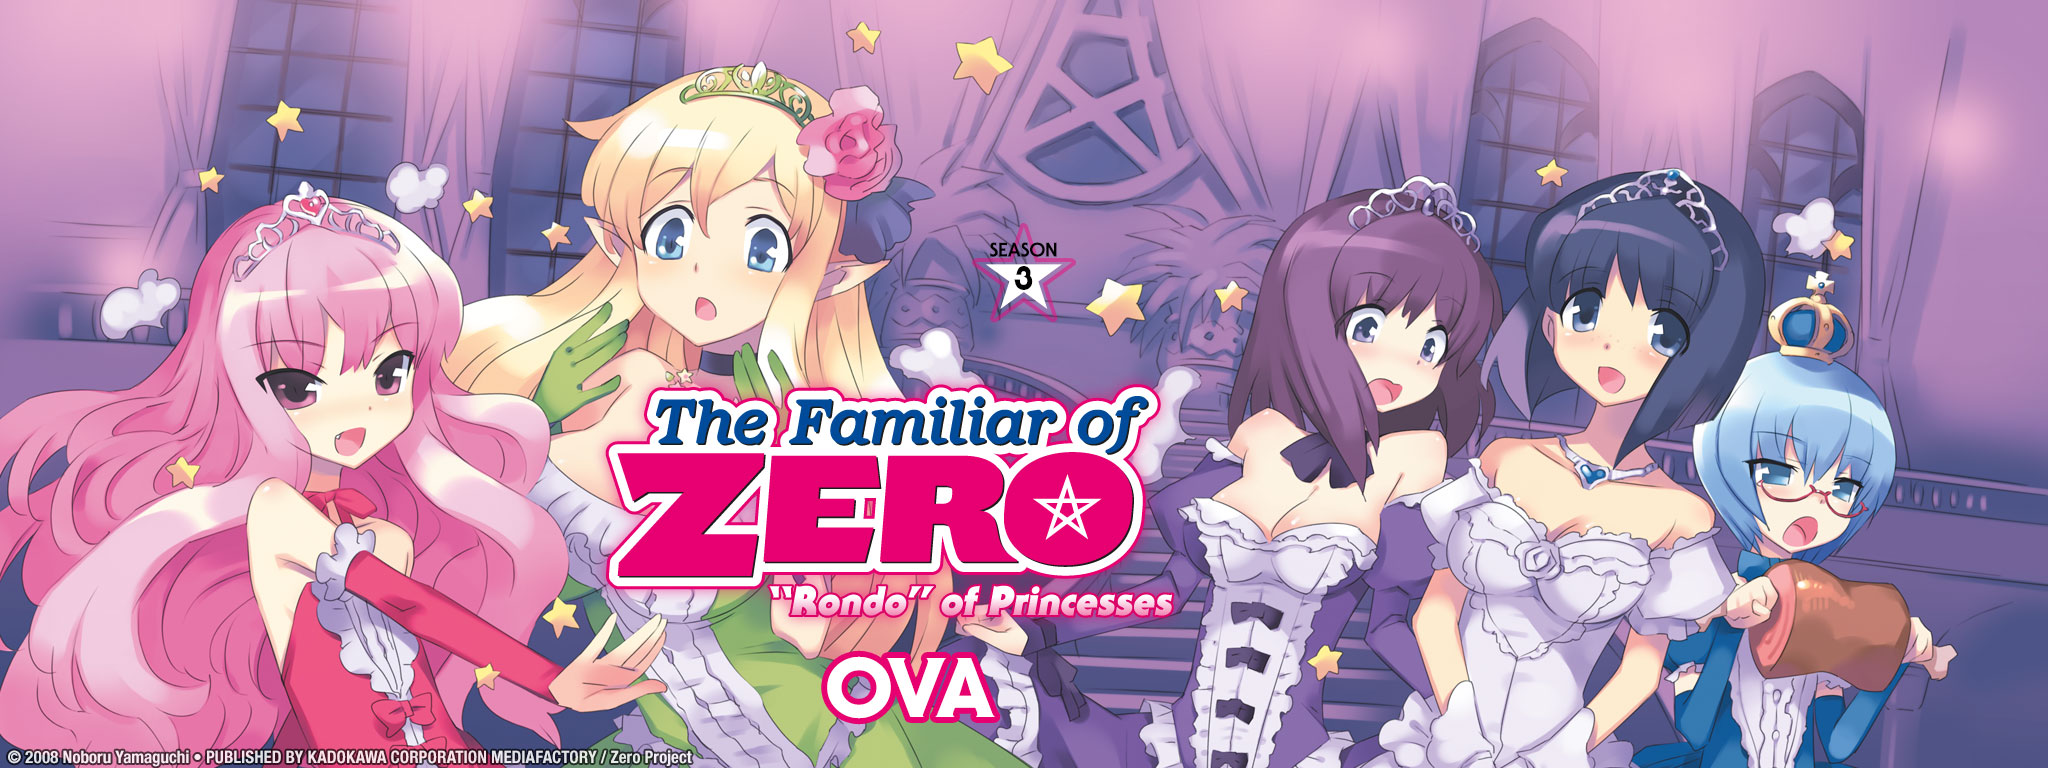 "The Familiar of Zero: ""Rondo"" of Princesses OVA"